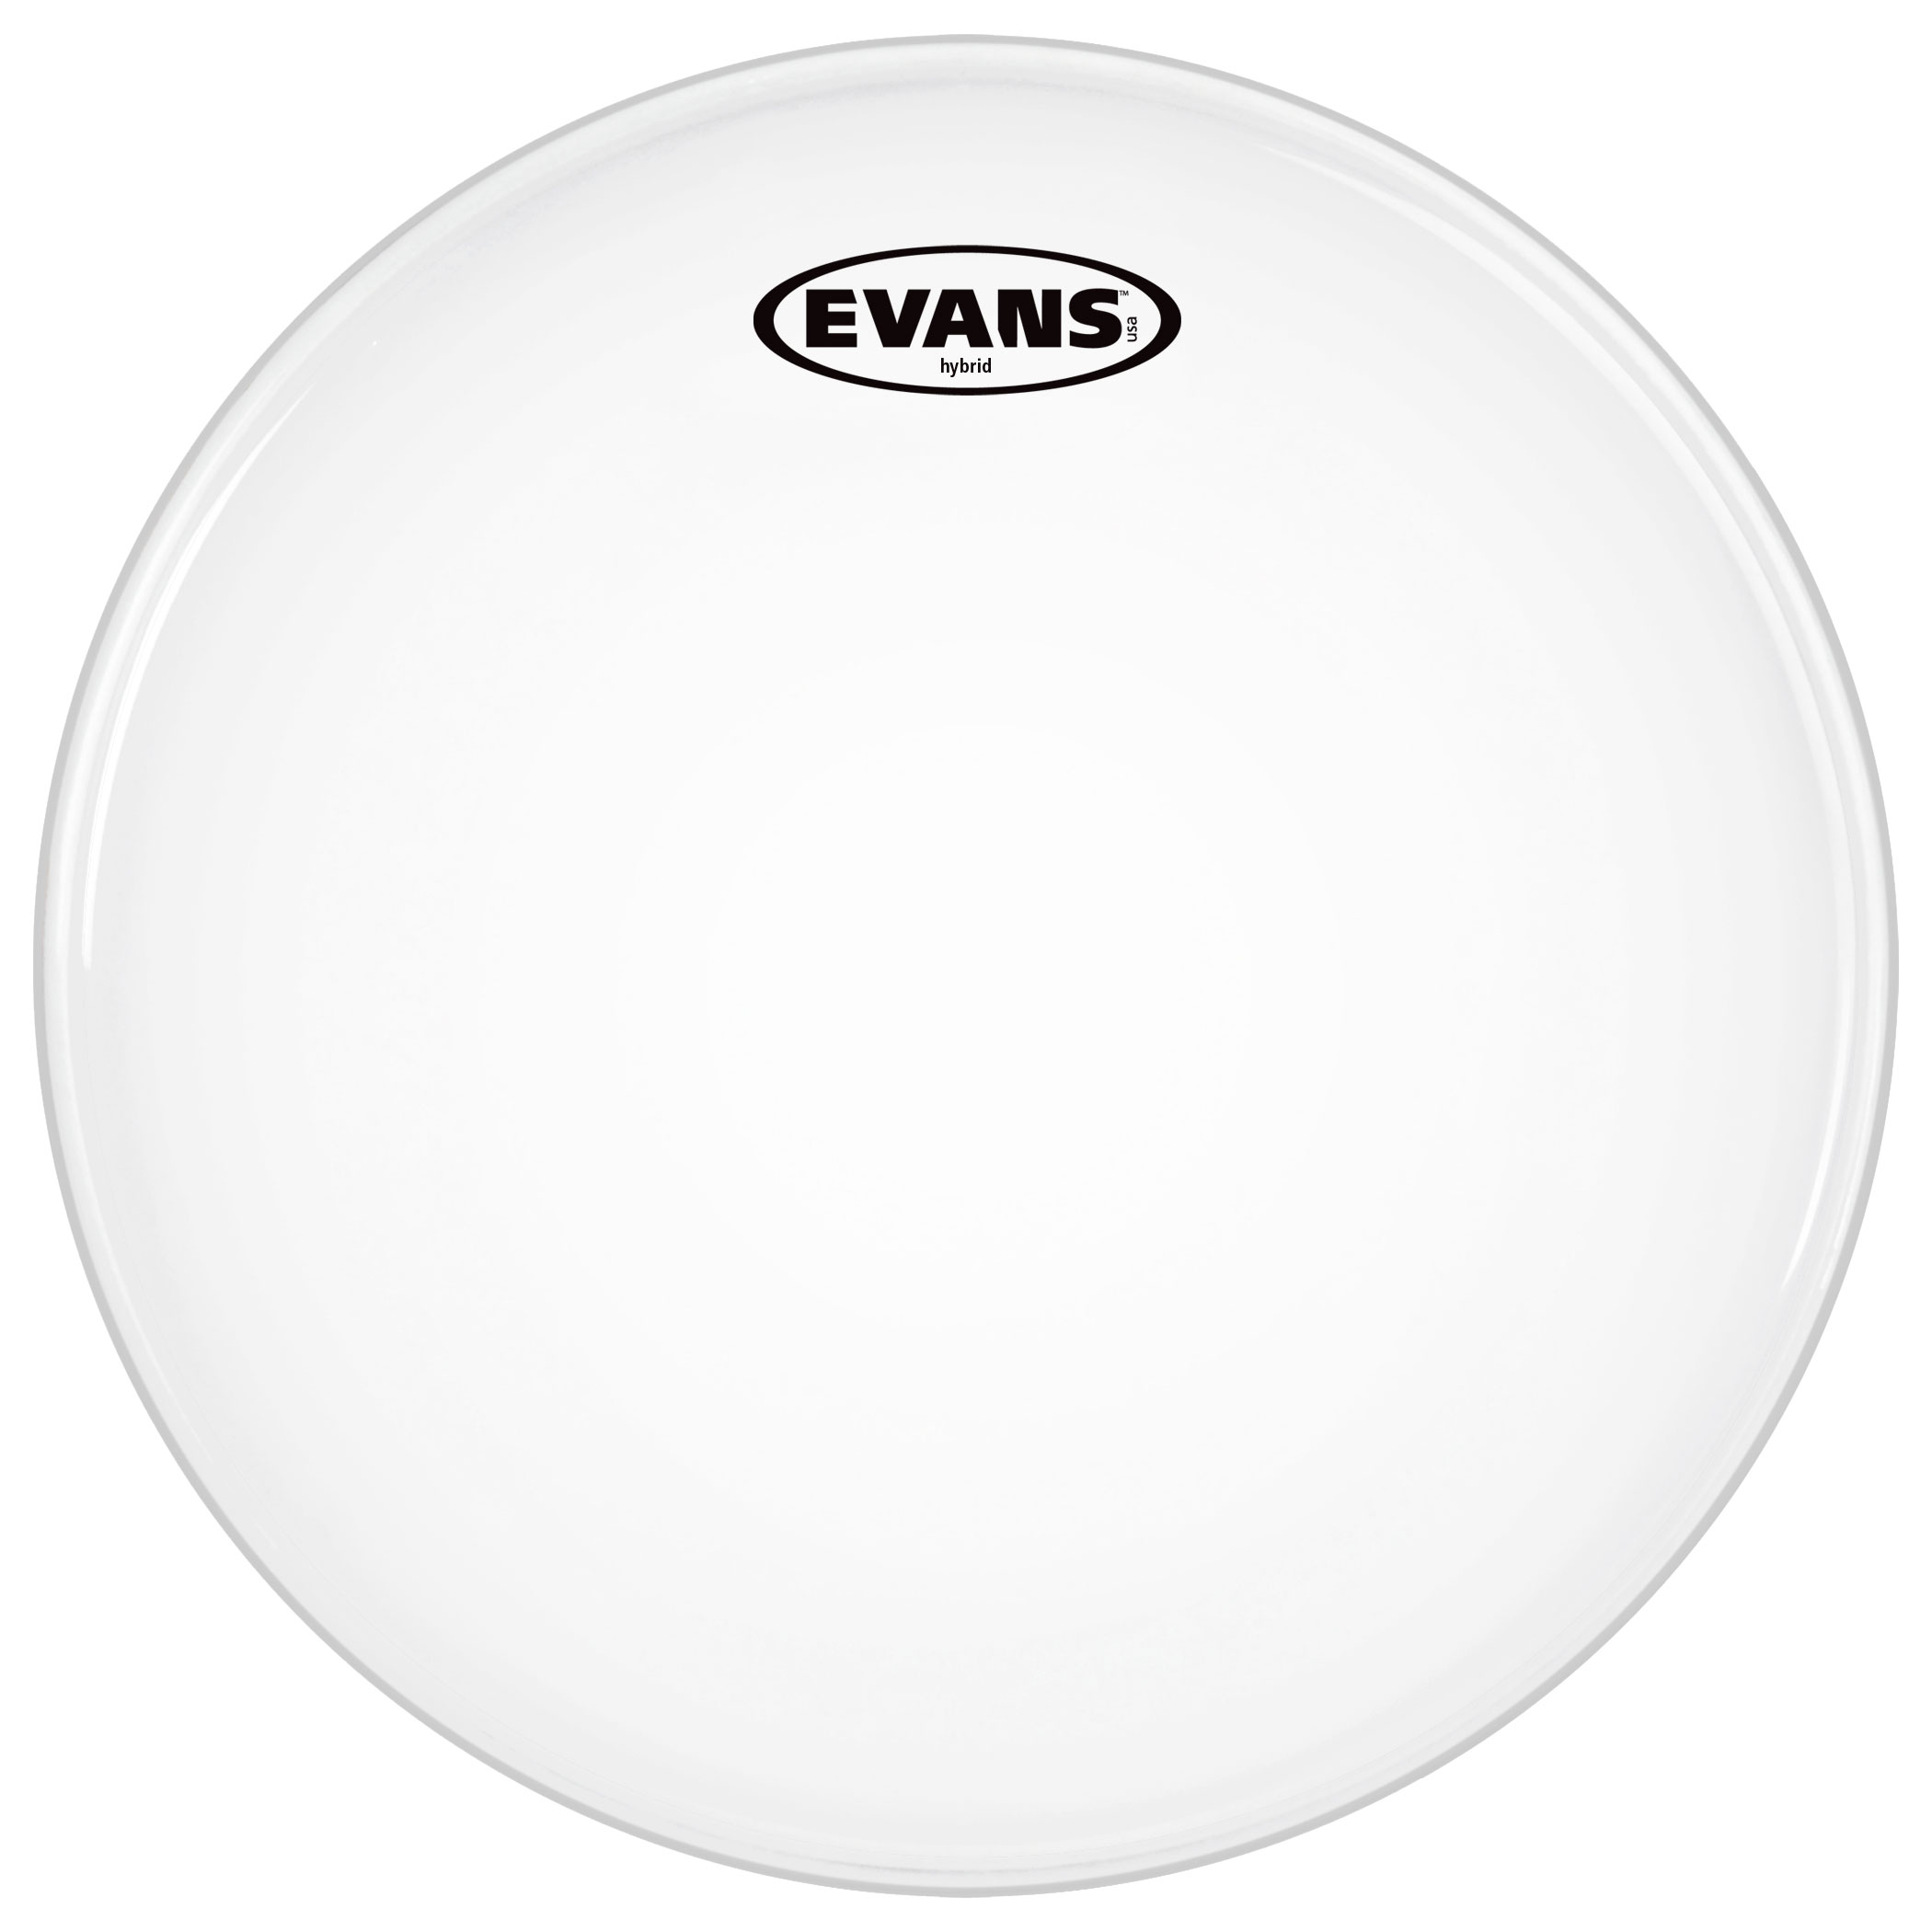 "Evans 13"" Hybrid White Marching Snare Top Head"